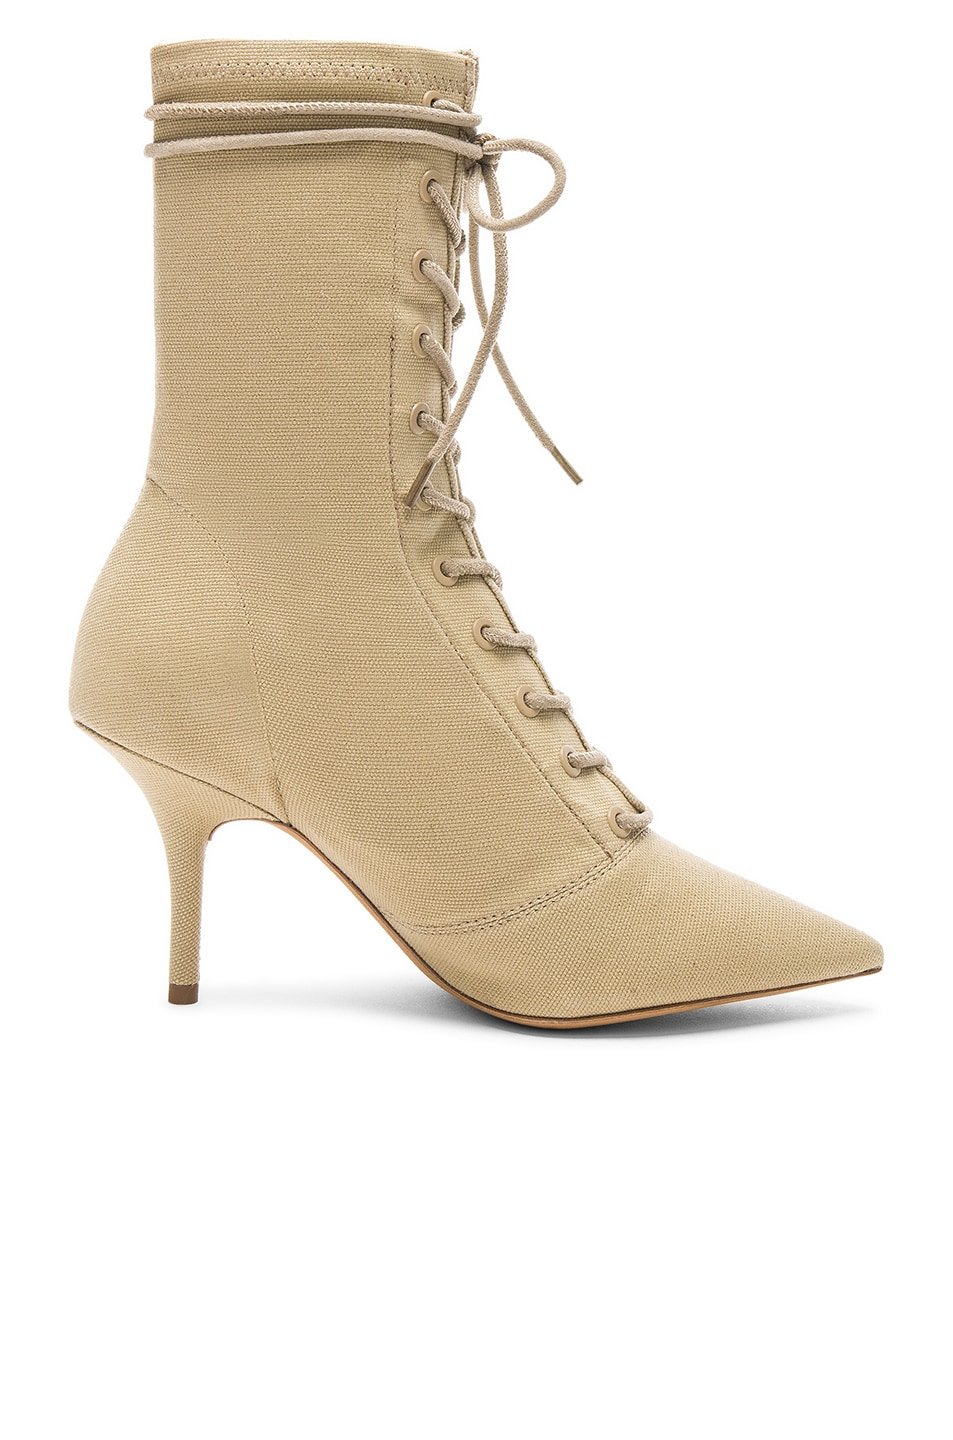 41ce6c1ac96d6 Image 1 of YEEZY Season 6 Stretch Canvas Lace Up Ankle Boot in Military  Light